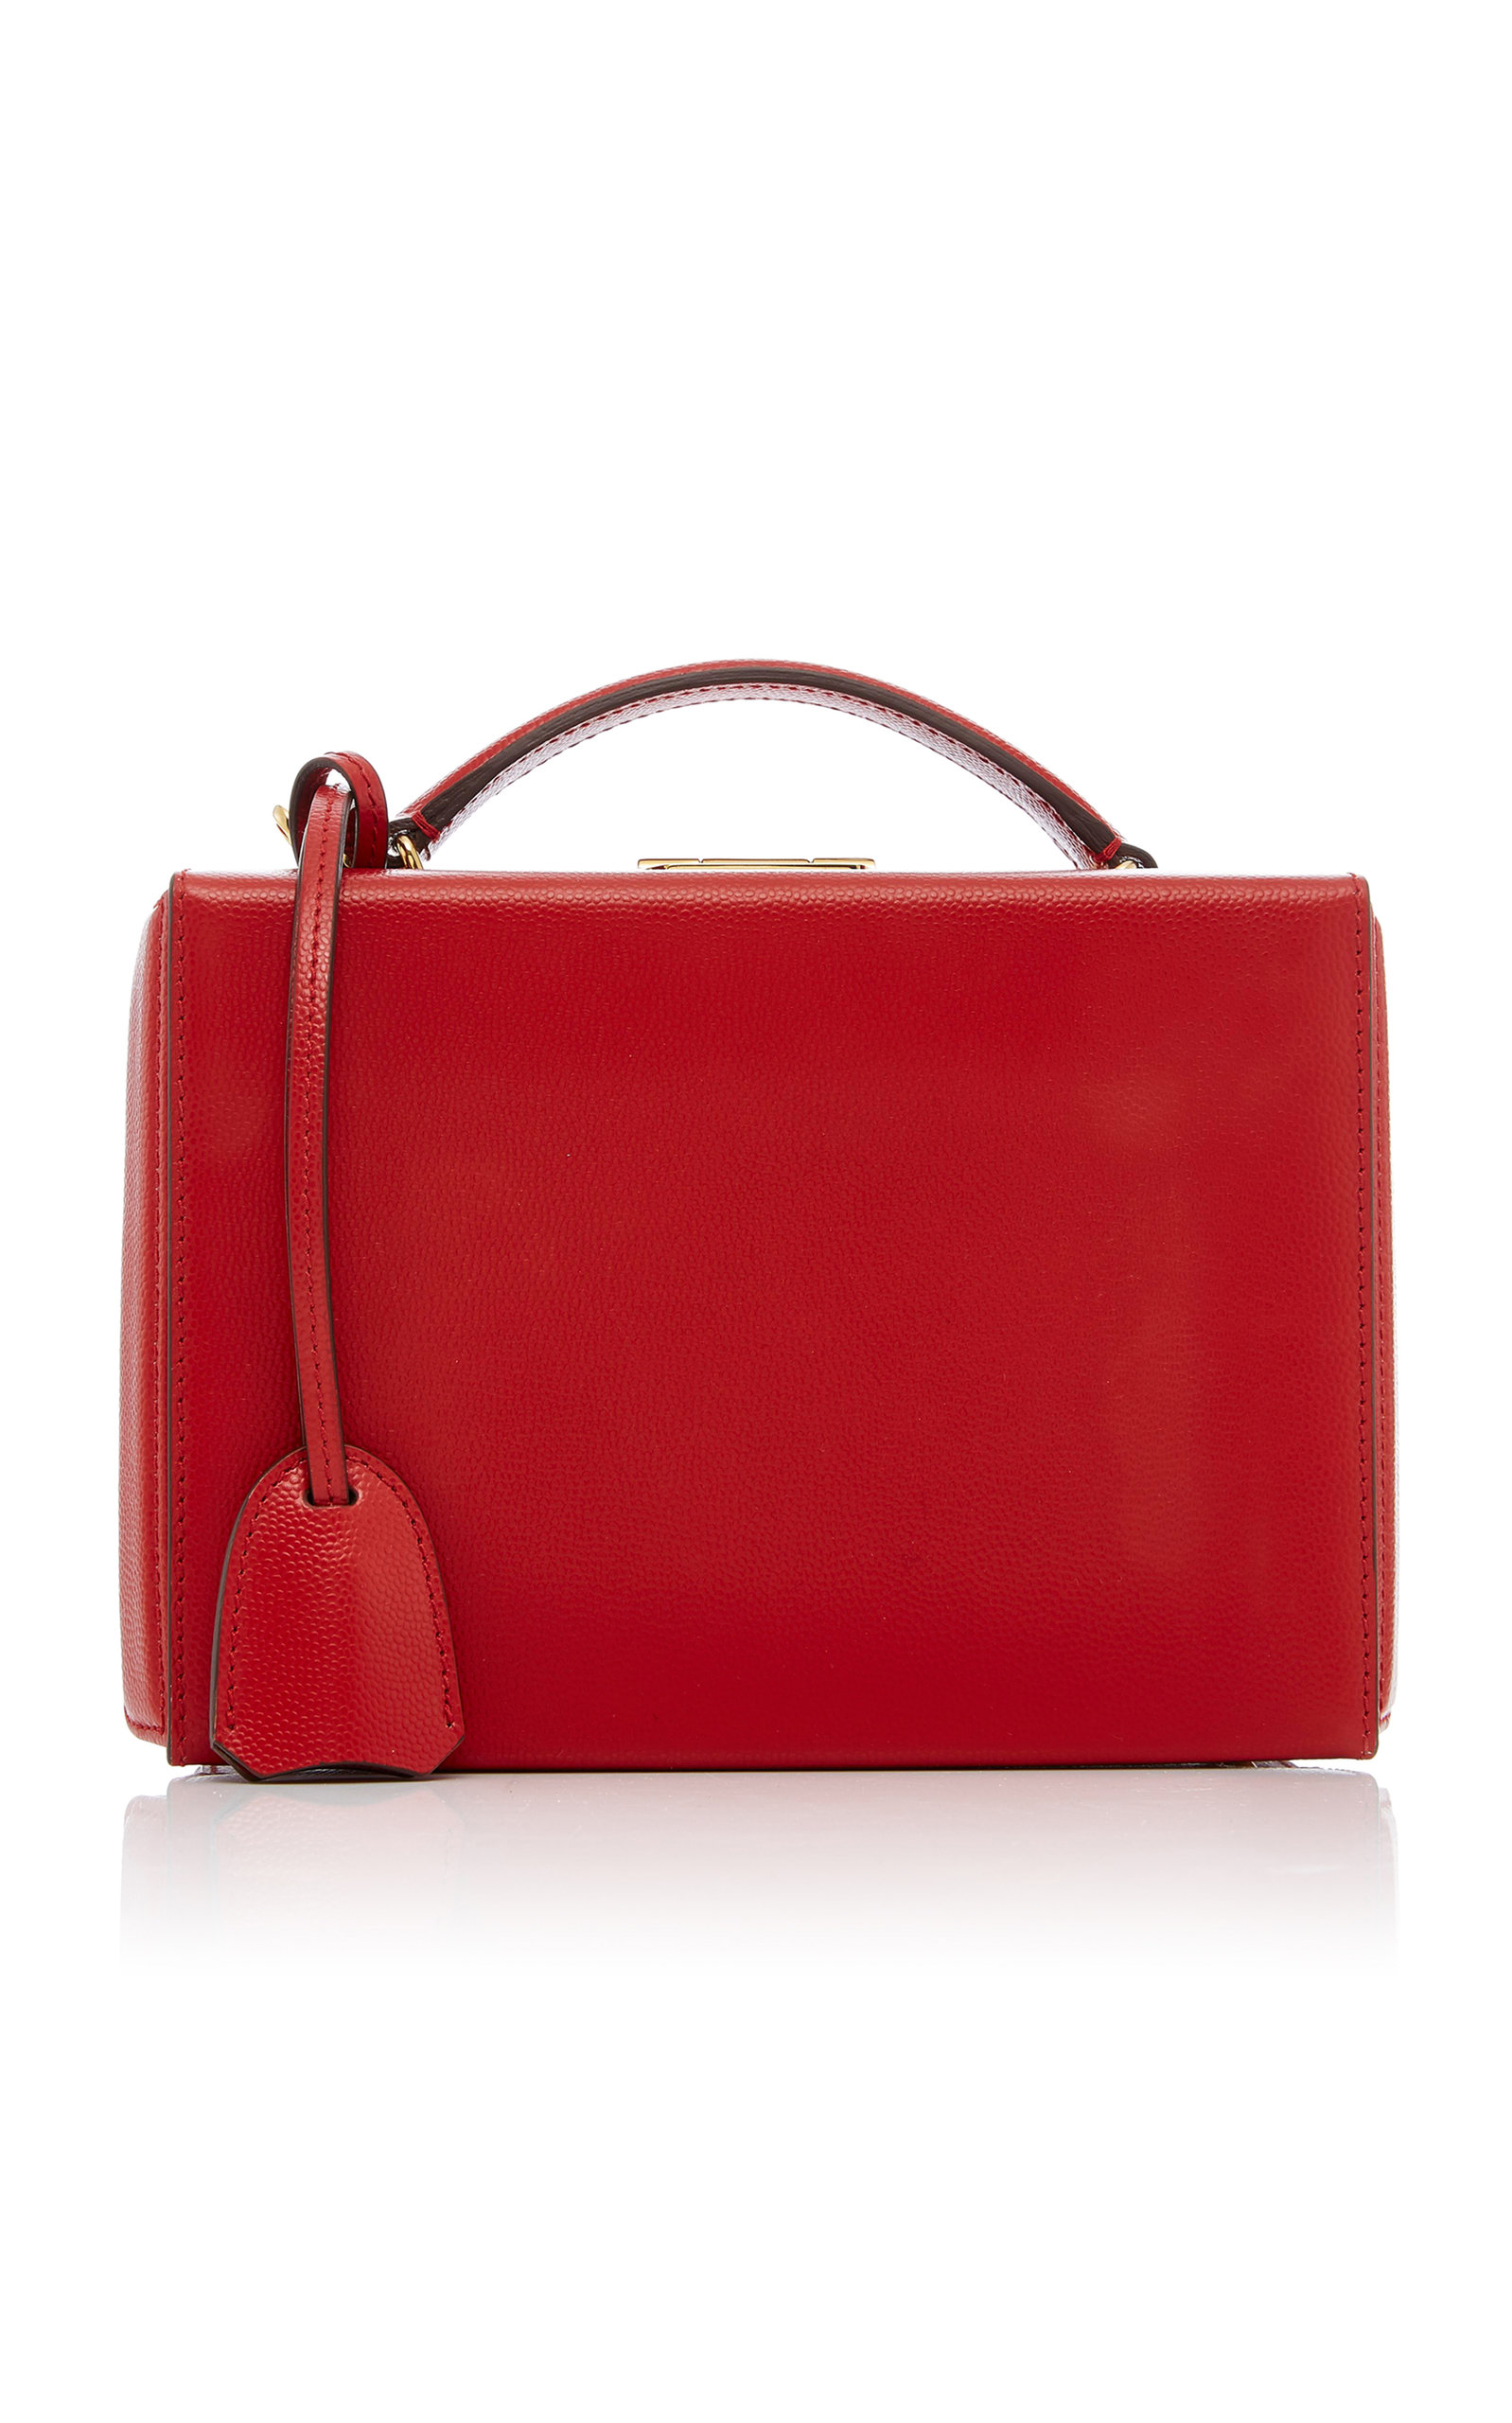 Mark Cross Grace Small Caviar Leather Box In Red | ModeSens